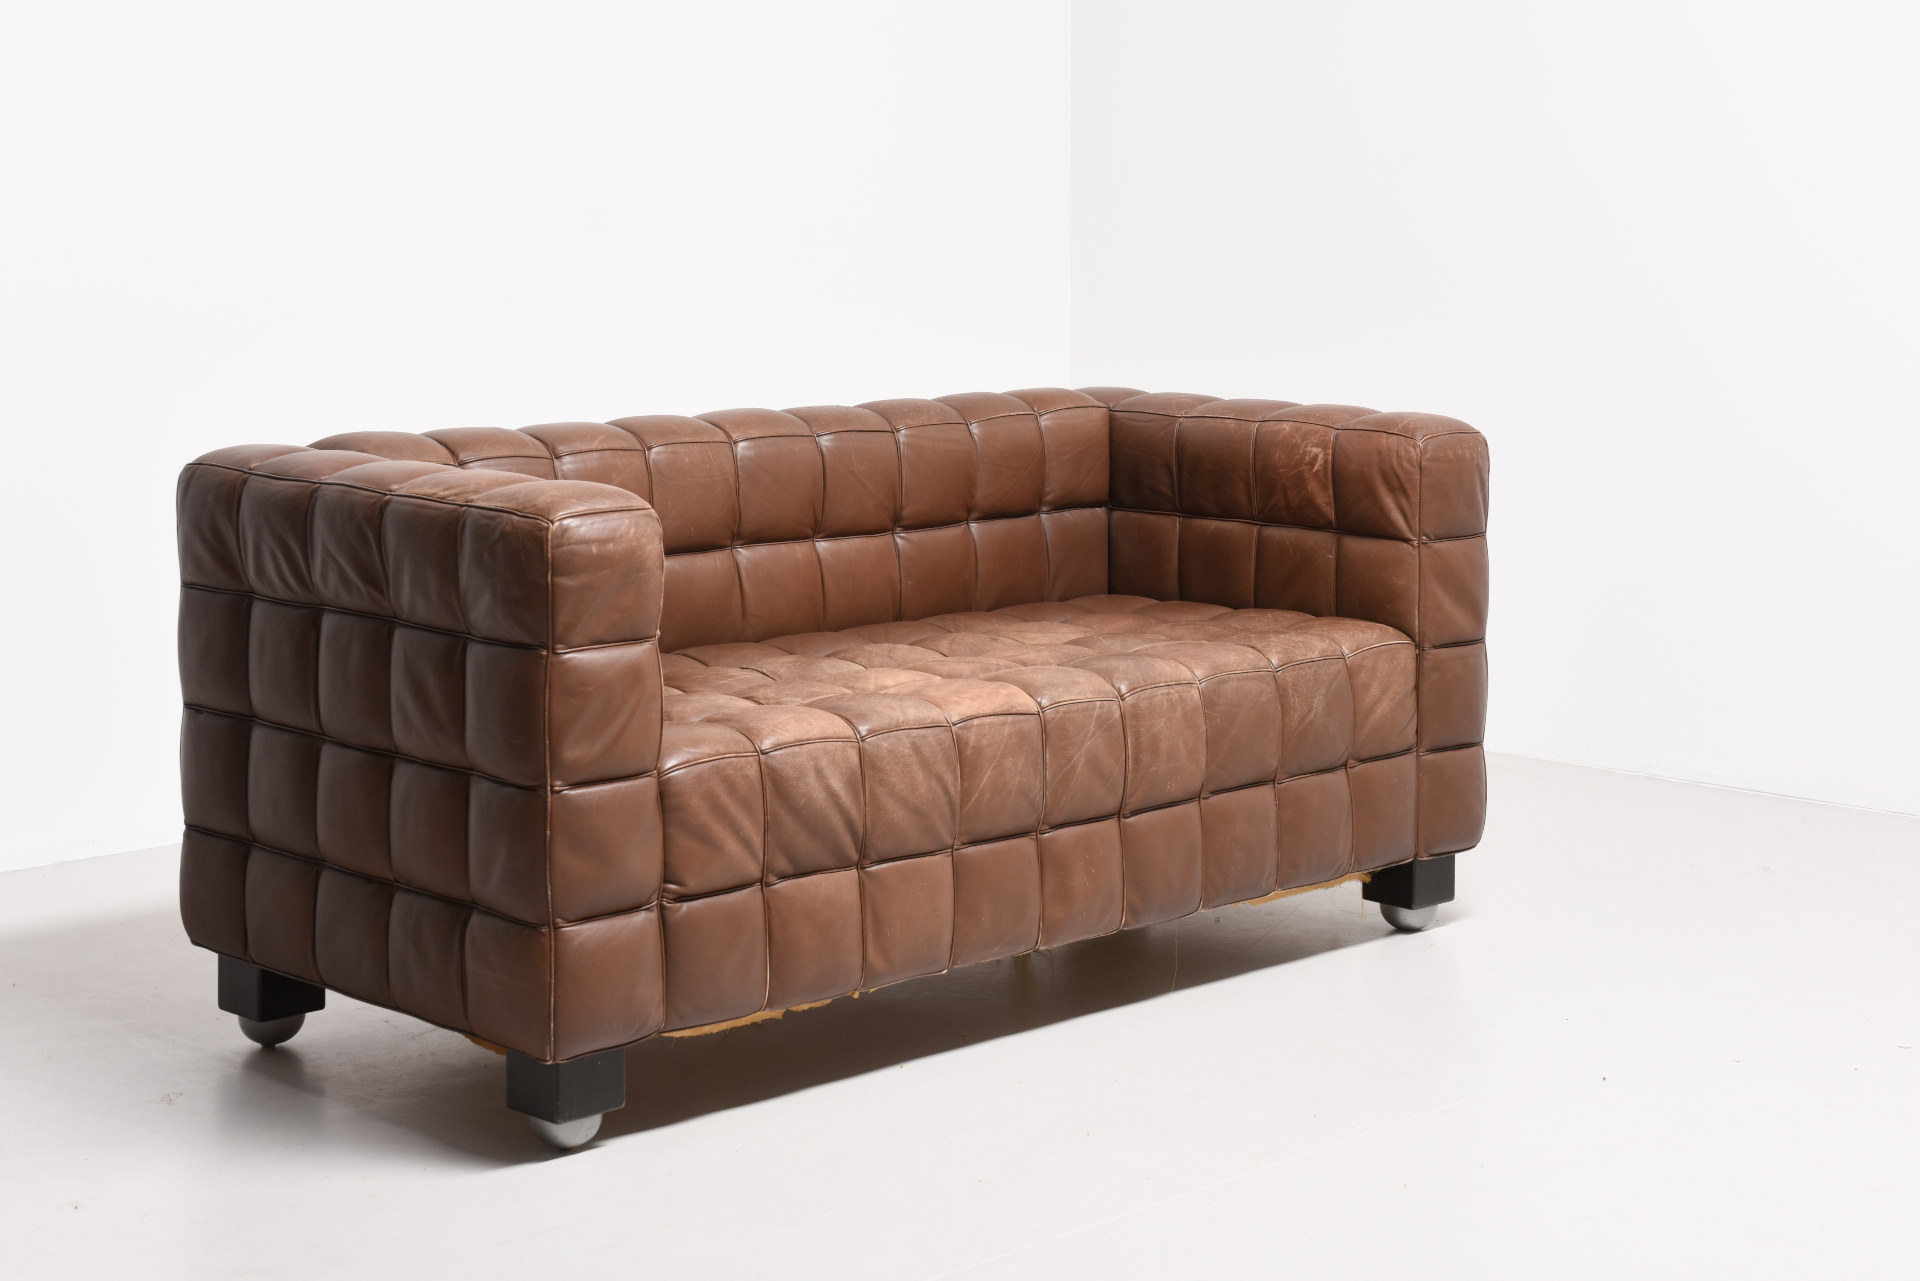 Kubus Sofa photo - 2